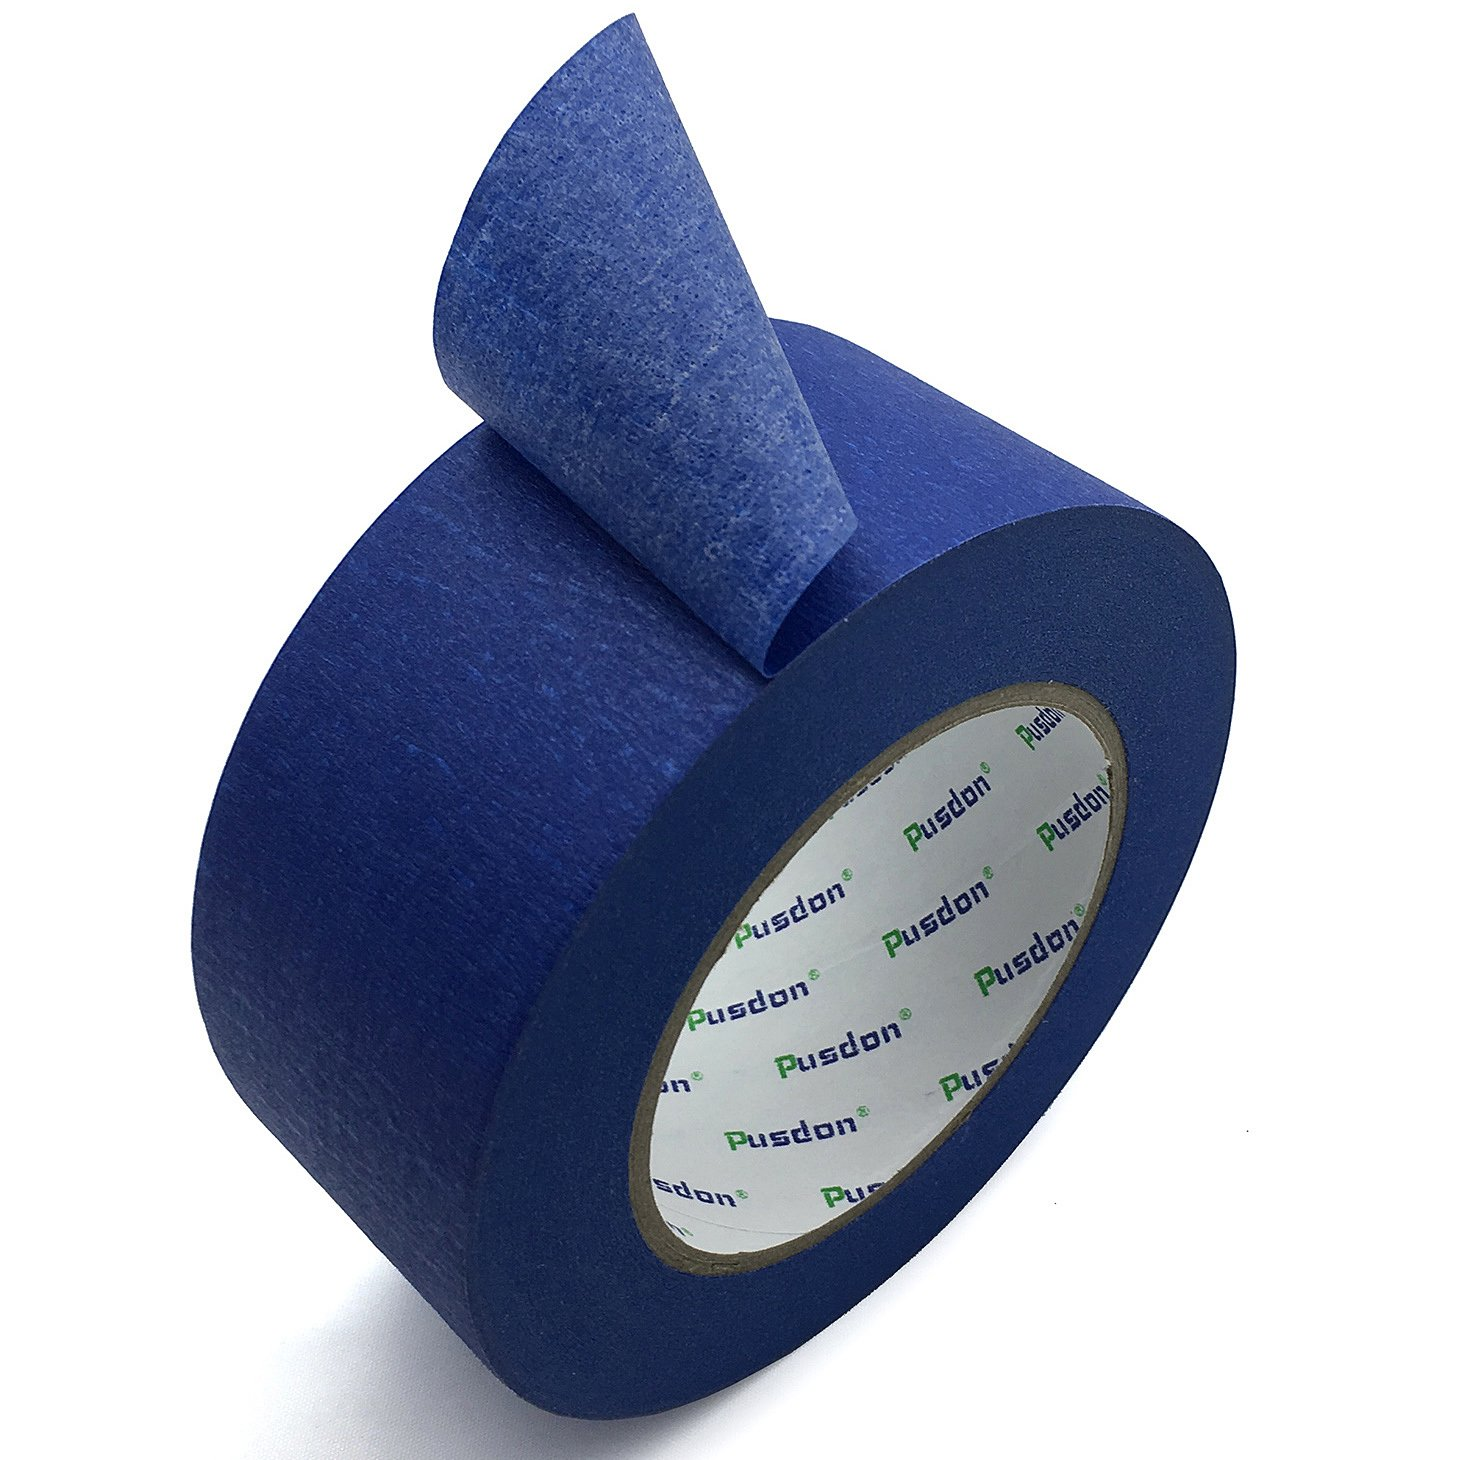 Pusdon Masking Tape, Painter's Tape, Blue, 2-Inch x 60 Yards (51mm x 55m)